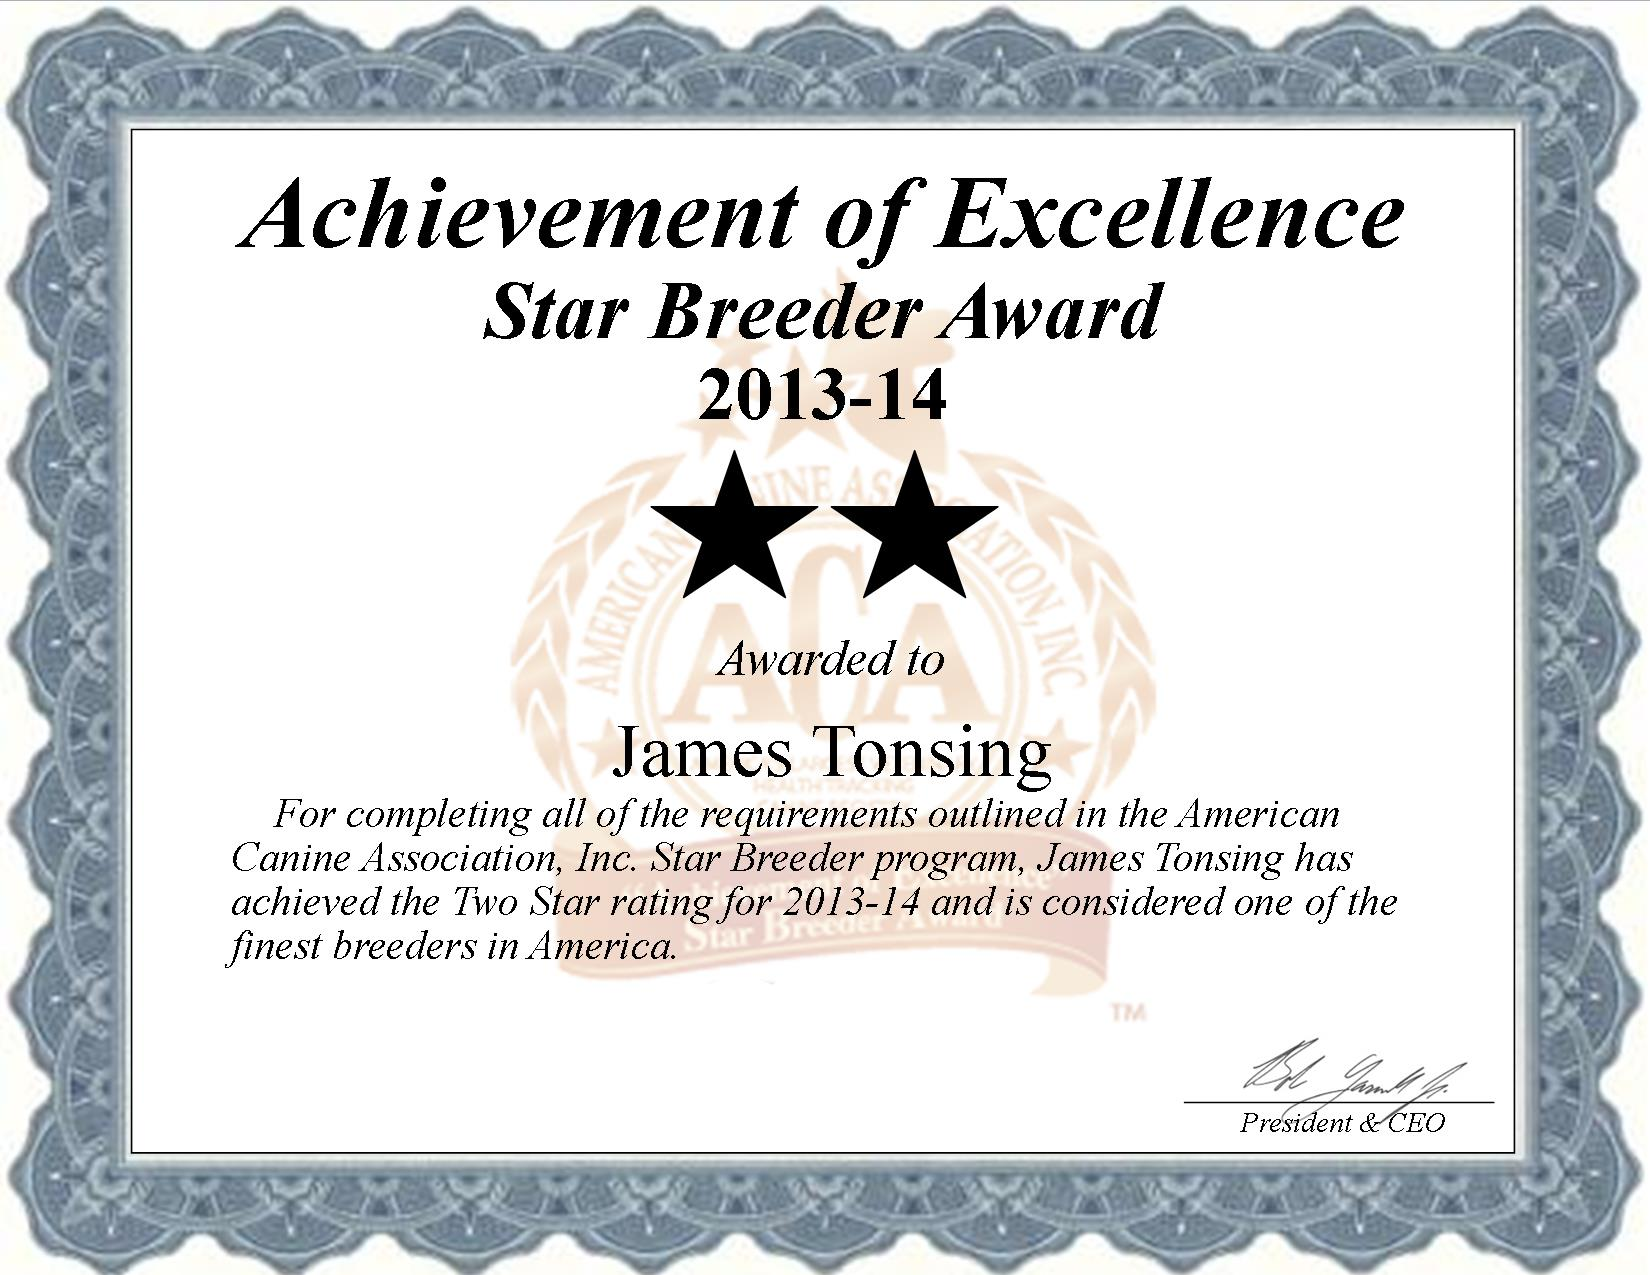 James Tonsing, James, Tonsing, Tonsing kennel, James Tonsing breeder, Antlers, OK, Oklahoma, Antlers OK, breeder, star breeder, 5 star breeders,  starbreeder, starbreeders, 2 star, dog,  puppy, puppies